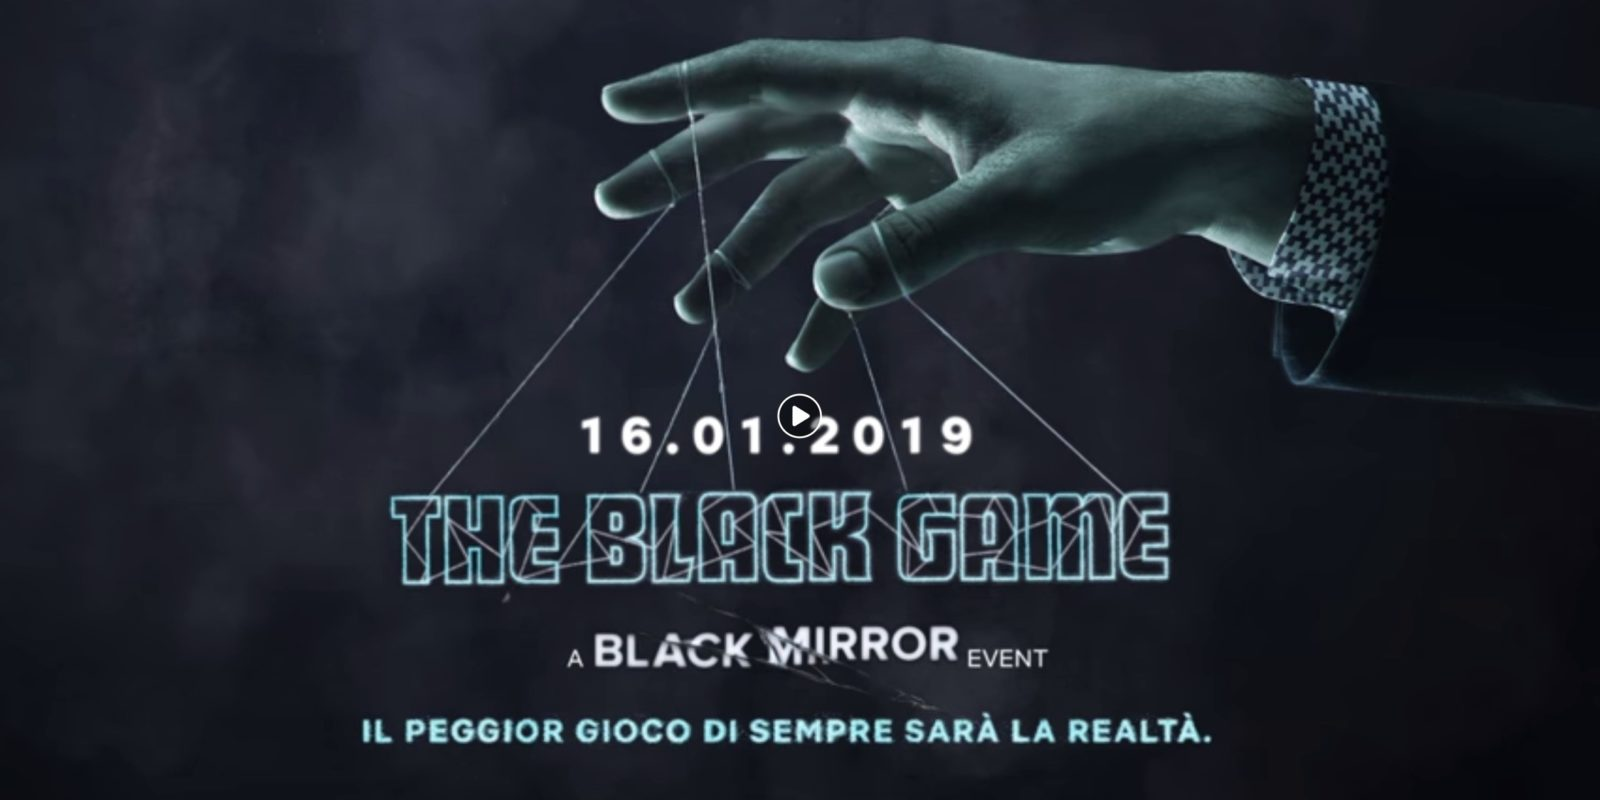 Netflix is actually introducing The Black Game